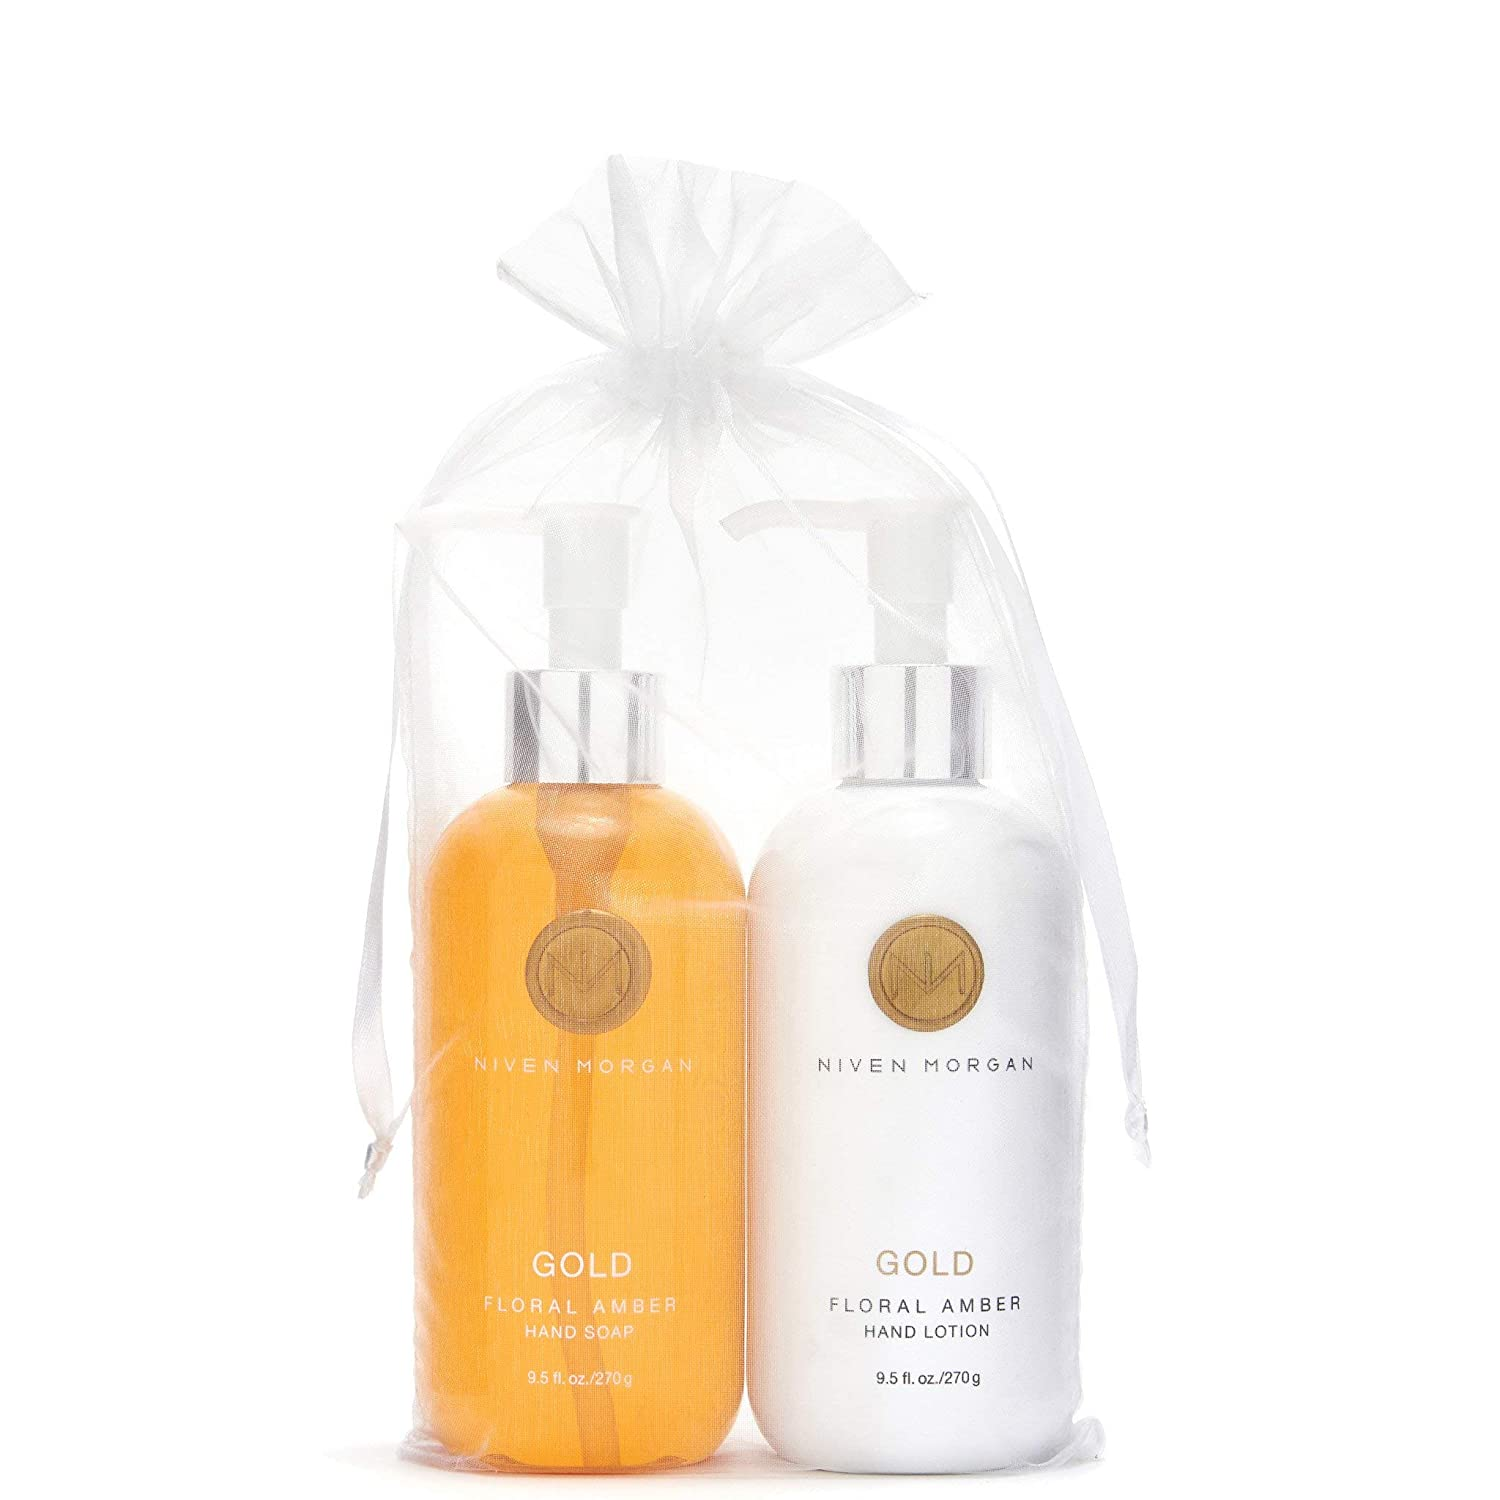 Niven Morgan Gold Hand Soap & Lotion Set 9.5 oz.